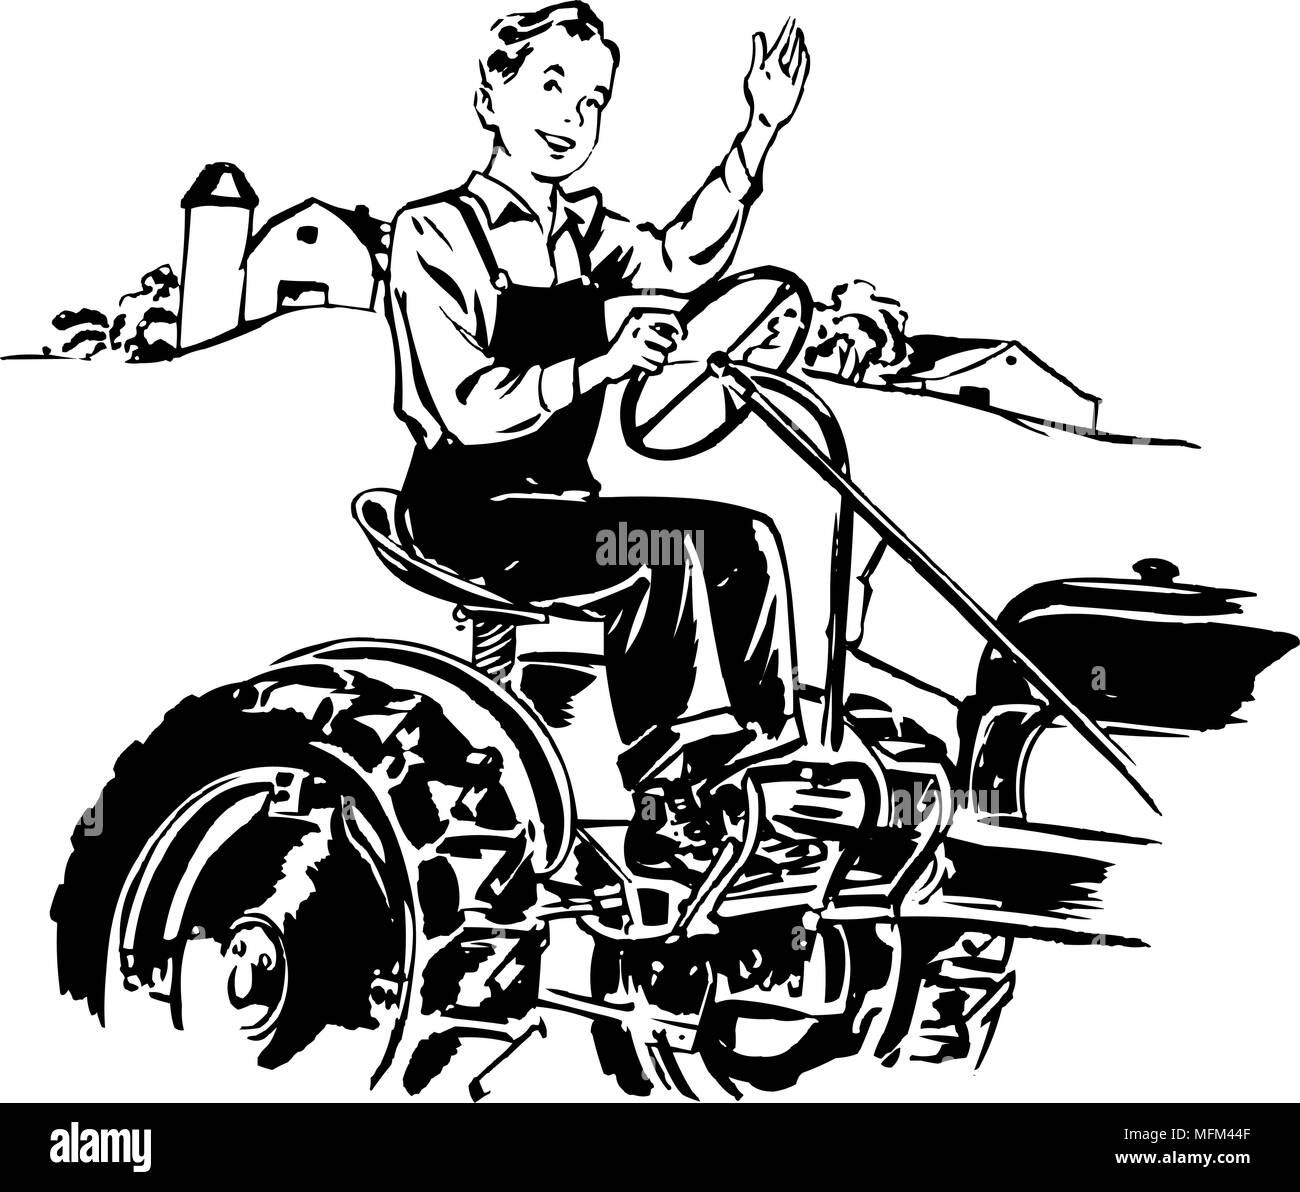 clip art 1950 s and man black and white stock photos images alamy Vintage Retro Clip Art man driving tractor retro clipart illustration stock image